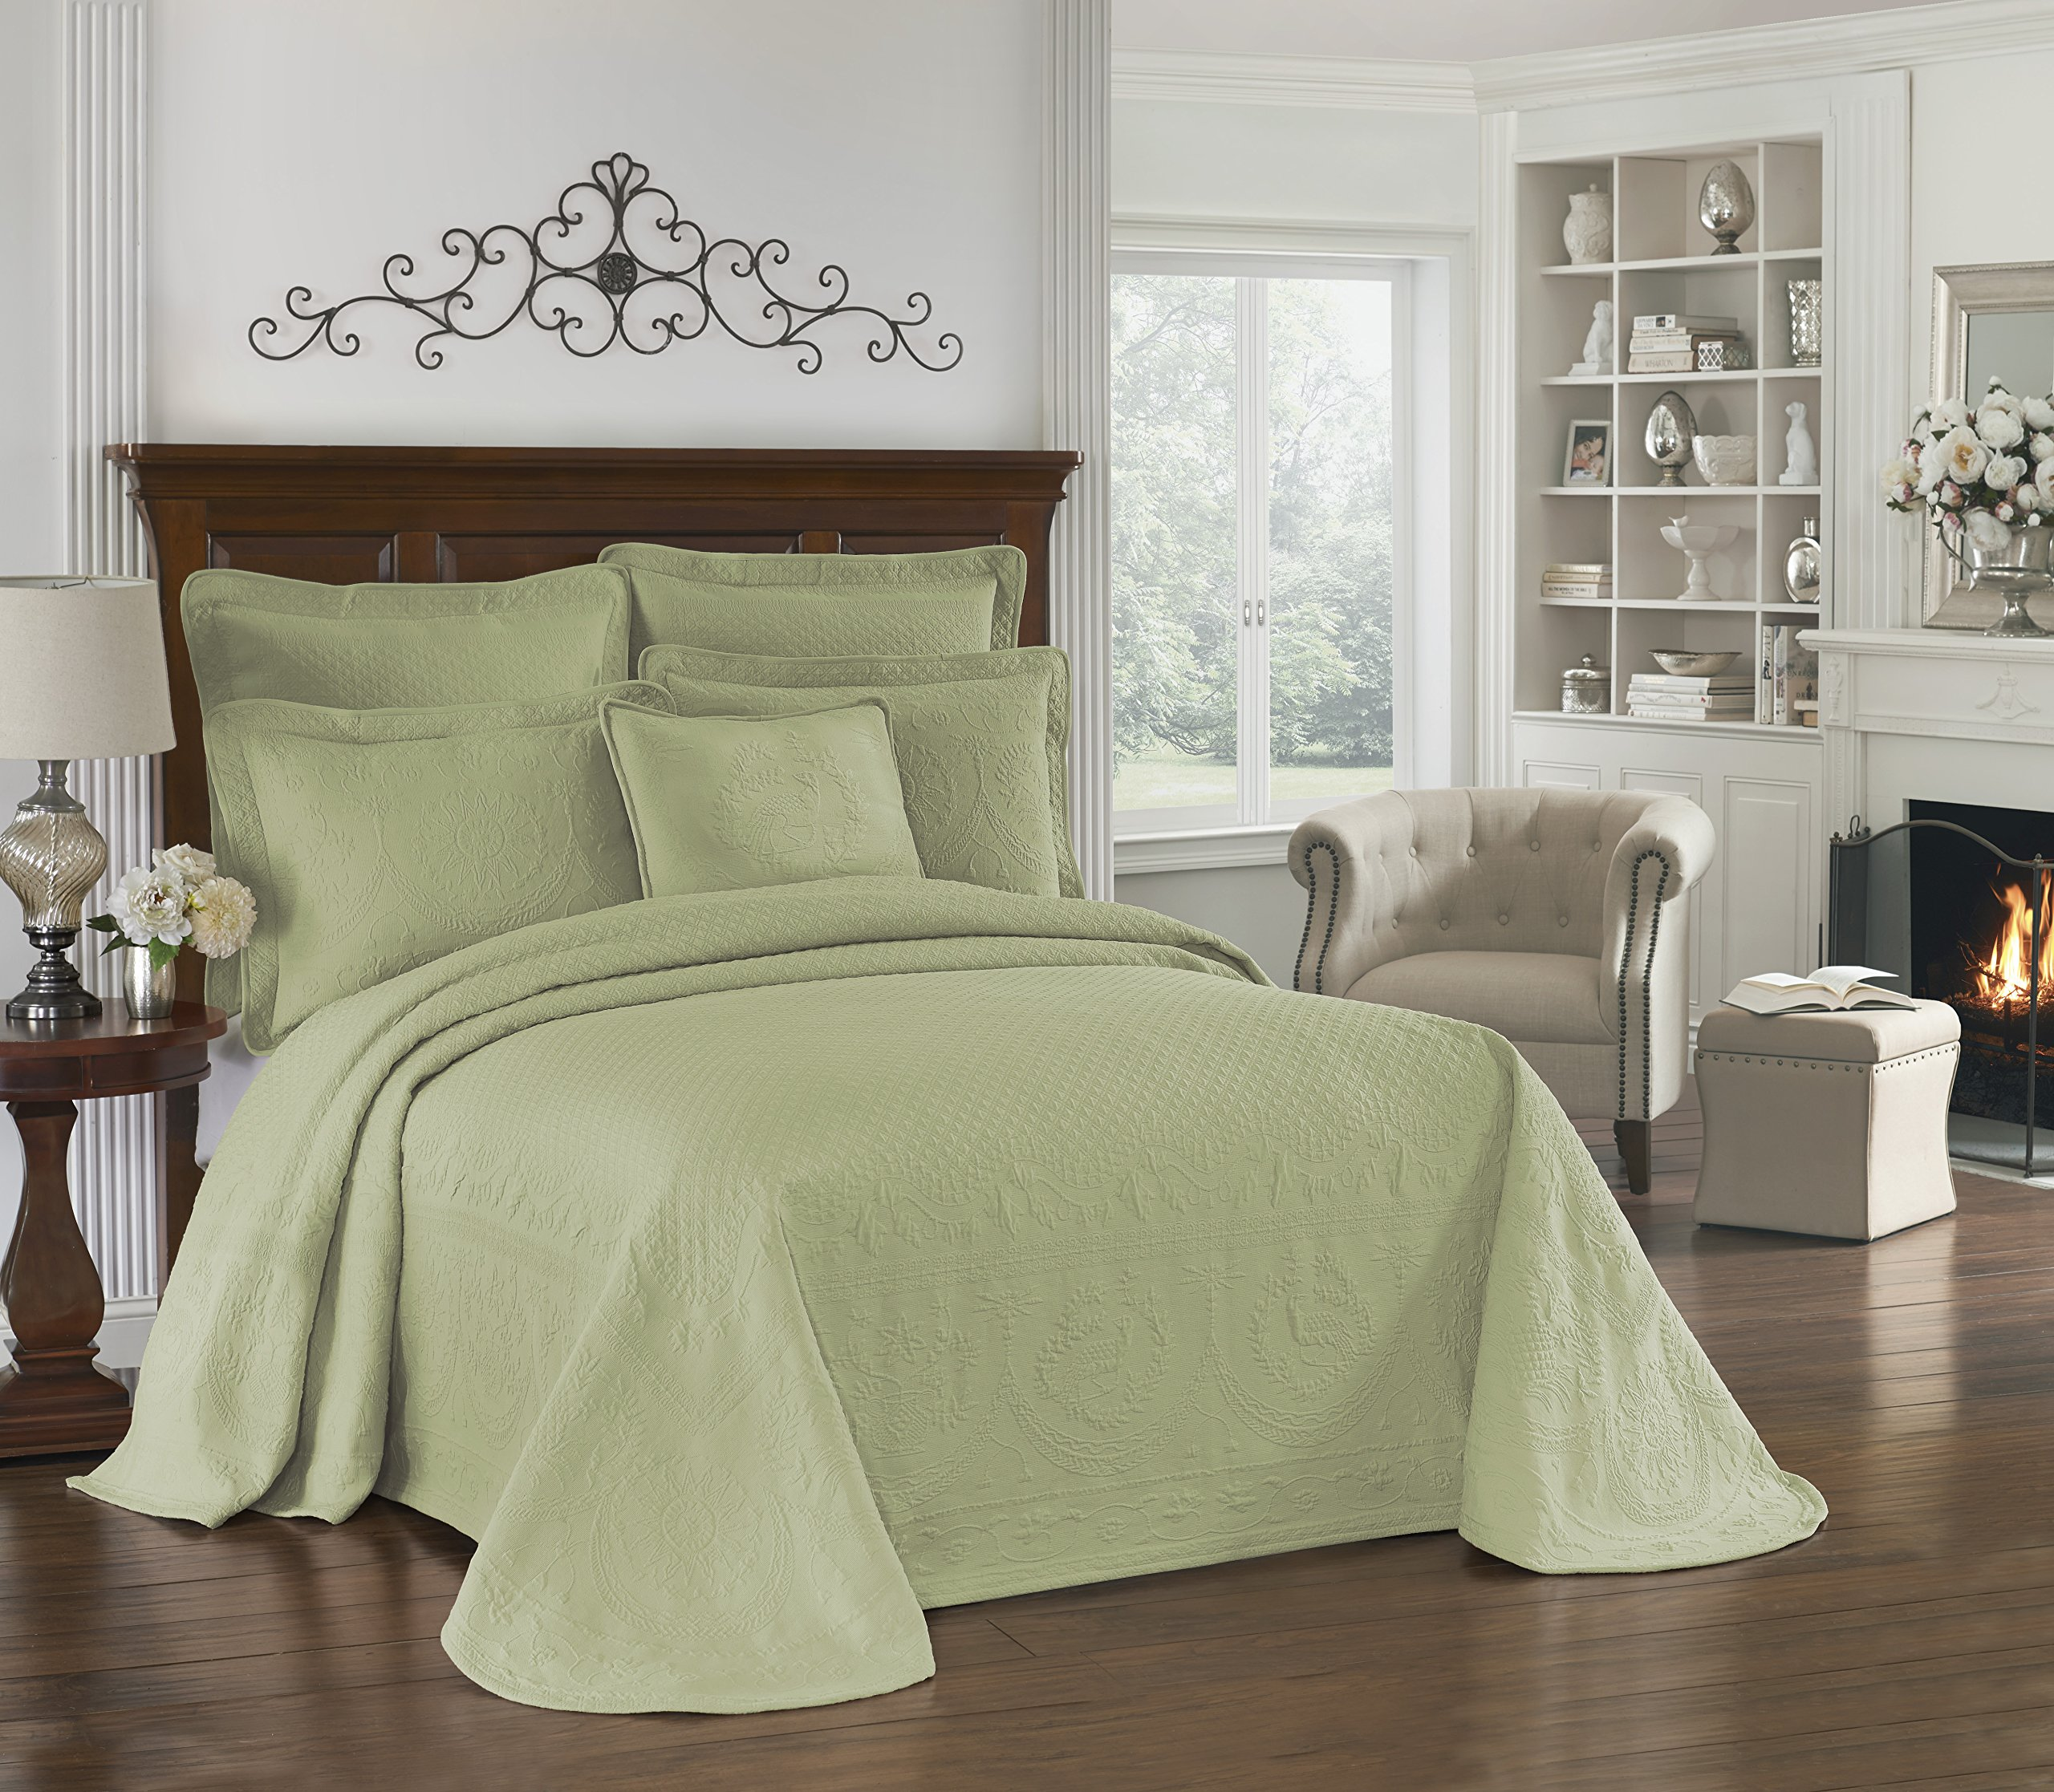 Historic Charleston Collection King Charles 13989BEDDKNGSAG Matelasse Bedspread, King, Sage by Historic Charleston Collection